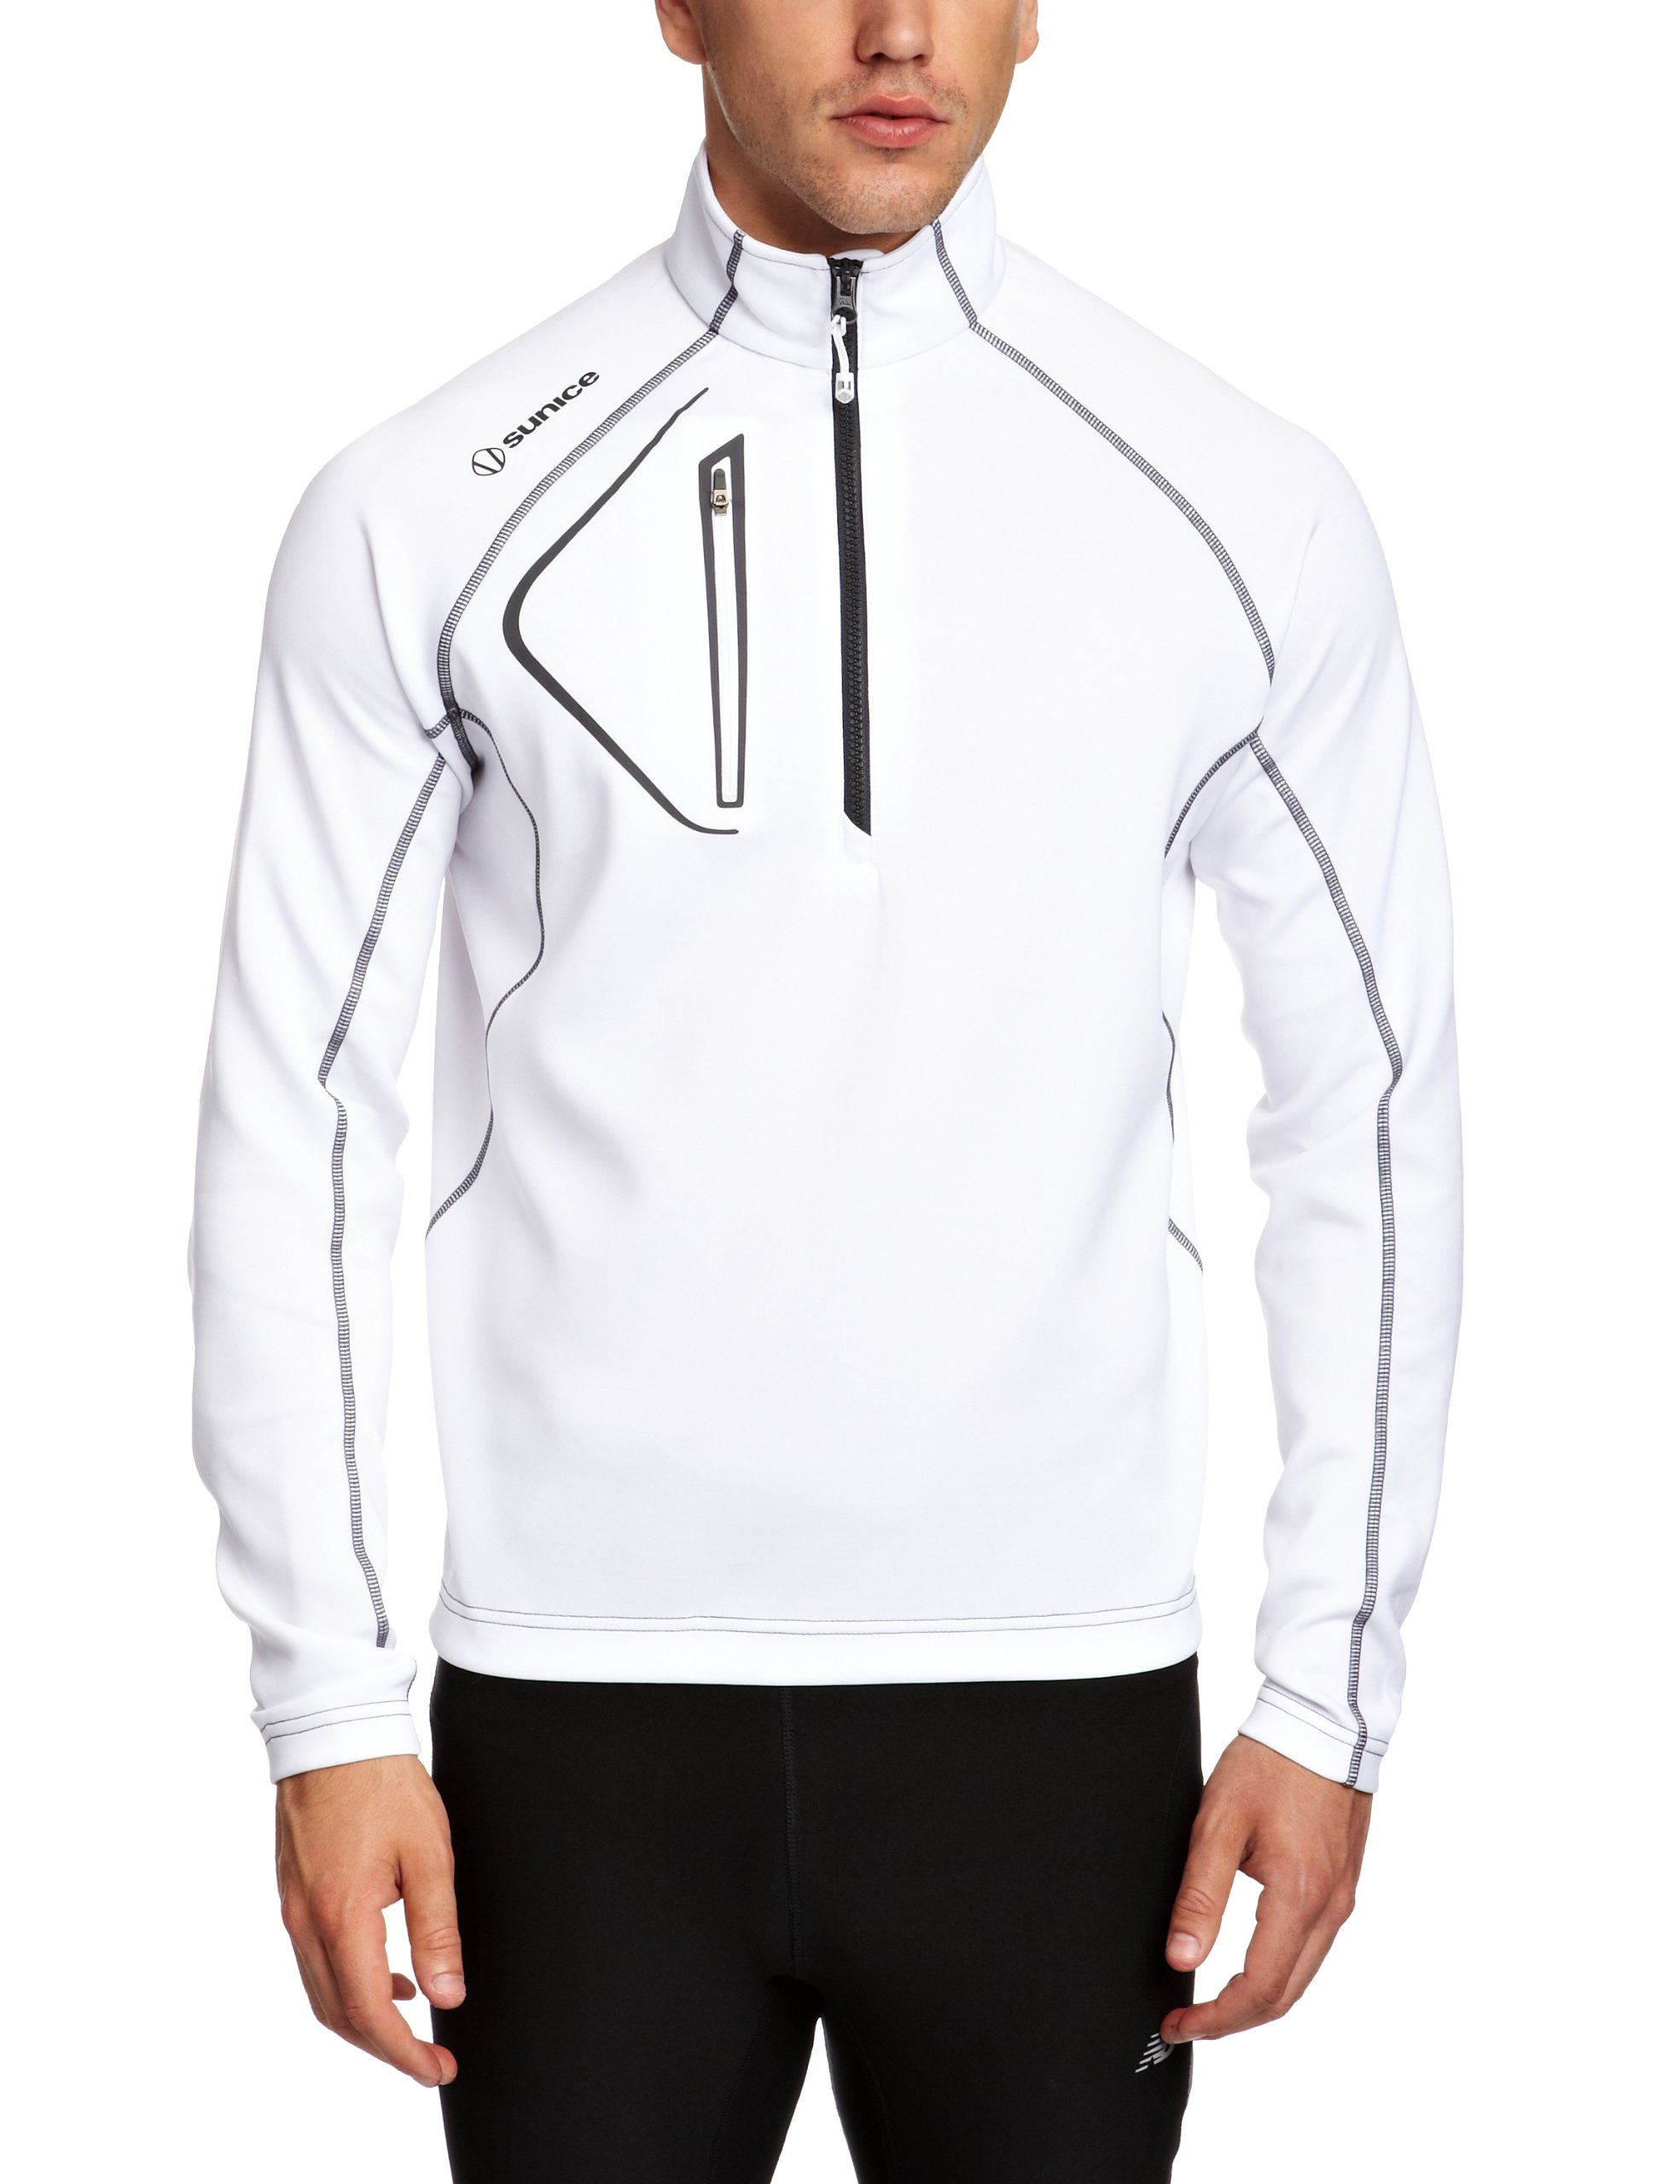 Sunice Men's Allendale Thermal Layer Jacket, White/Charcoal, XX-Large by Sunice